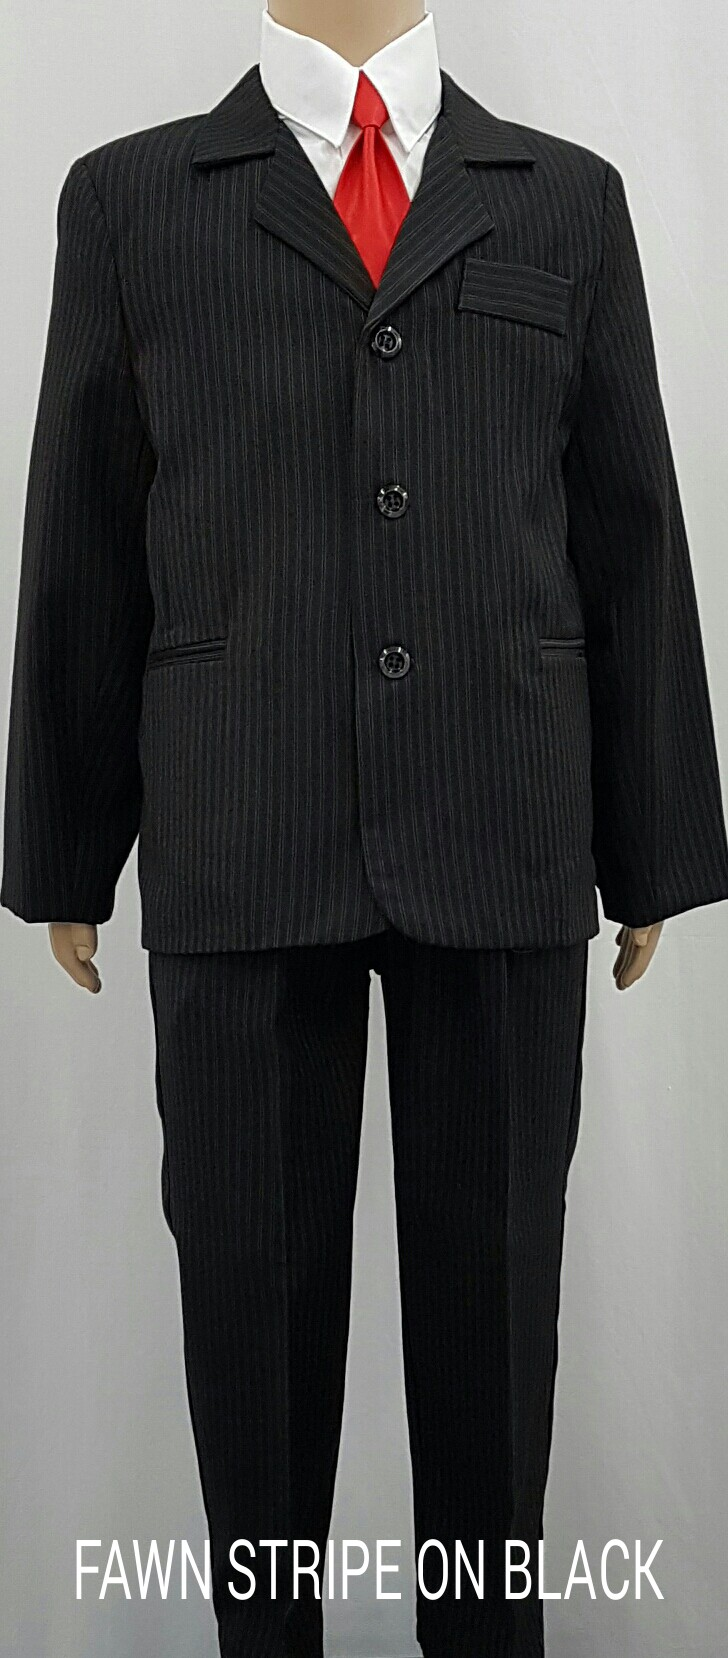 Pre-owned boys 3 piece suit size 4T only worn once in good to very good condition. Comes with button down shirt, pants, vest, and clip-on tie. Comes from a non-smoking and non pet home.